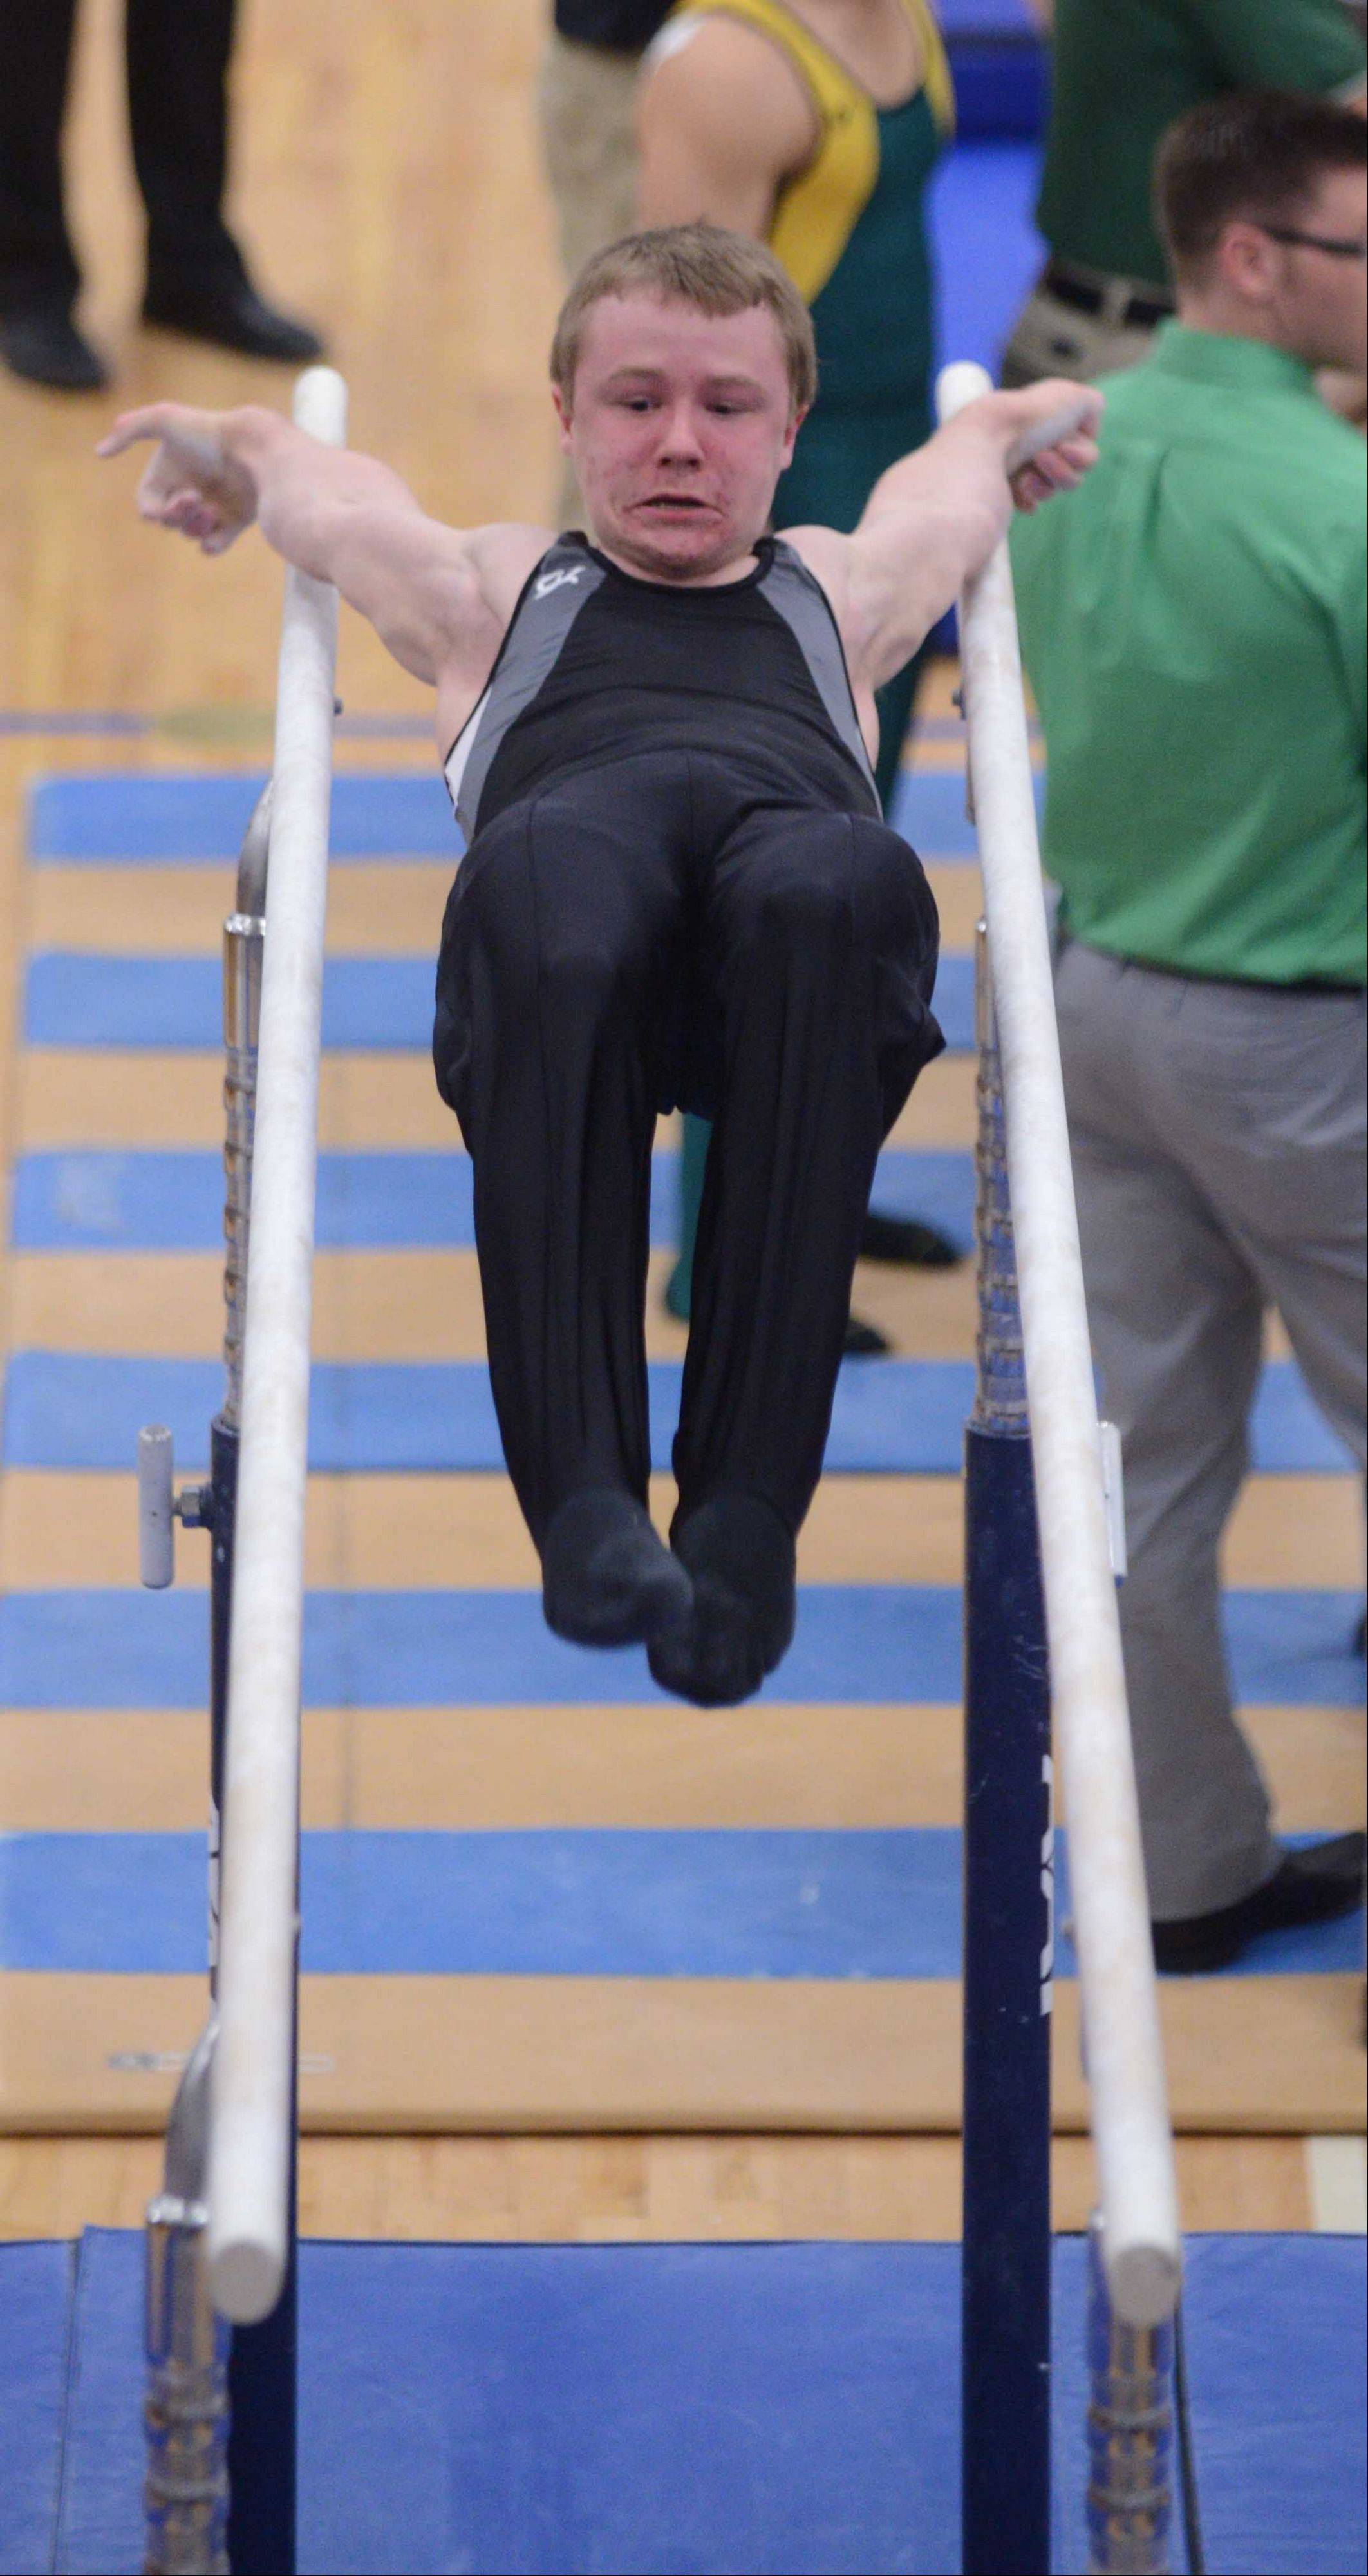 Steve Merena of Elgin performs on the parallel bars during bys gymnastics state finals at Lincoln-Way East in Frankfort on Friday.